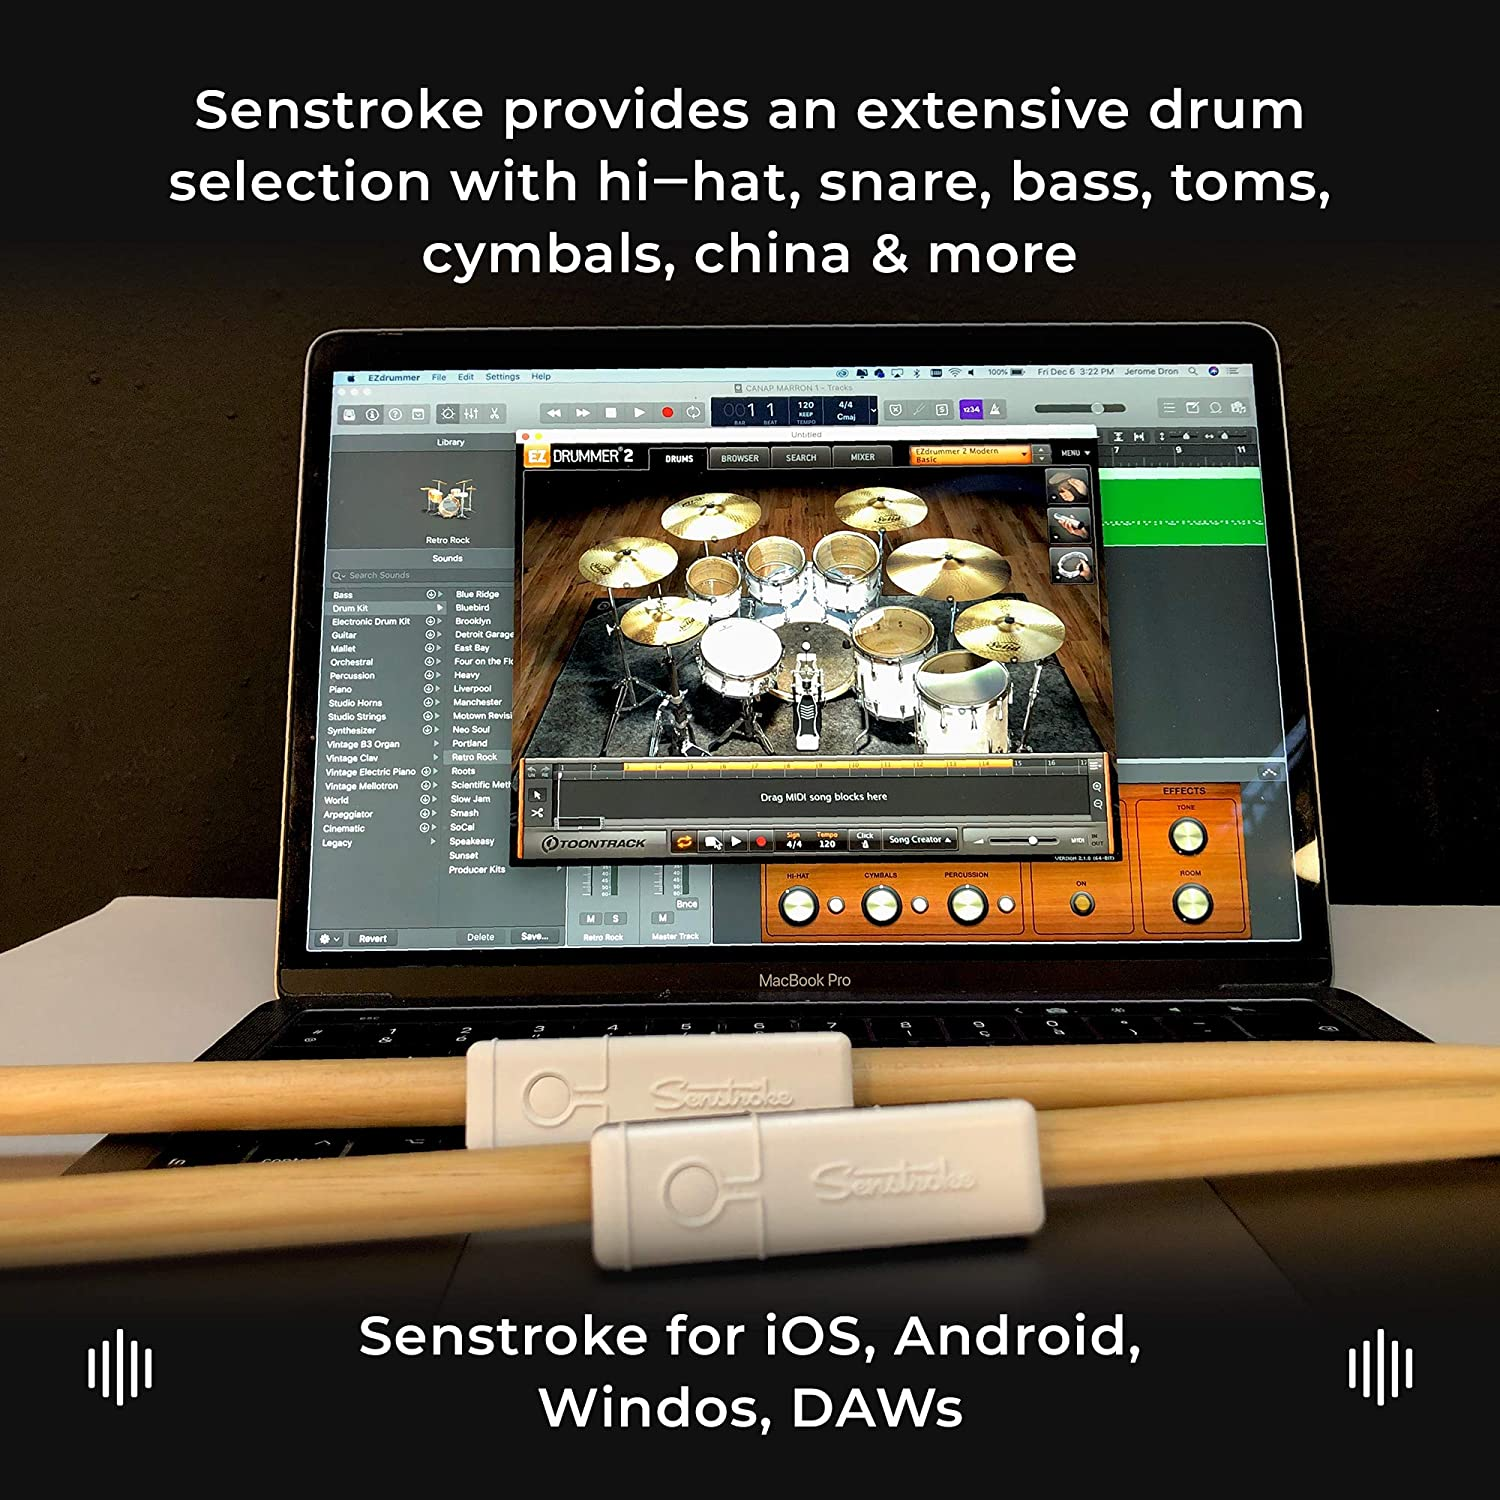 Senstroke by Redison Bluetooth Drum Kit App Drumsticks Ultimate Box Quiet Portable Practice with 1 Pad Multiple Sensors /& Protective Travel Case